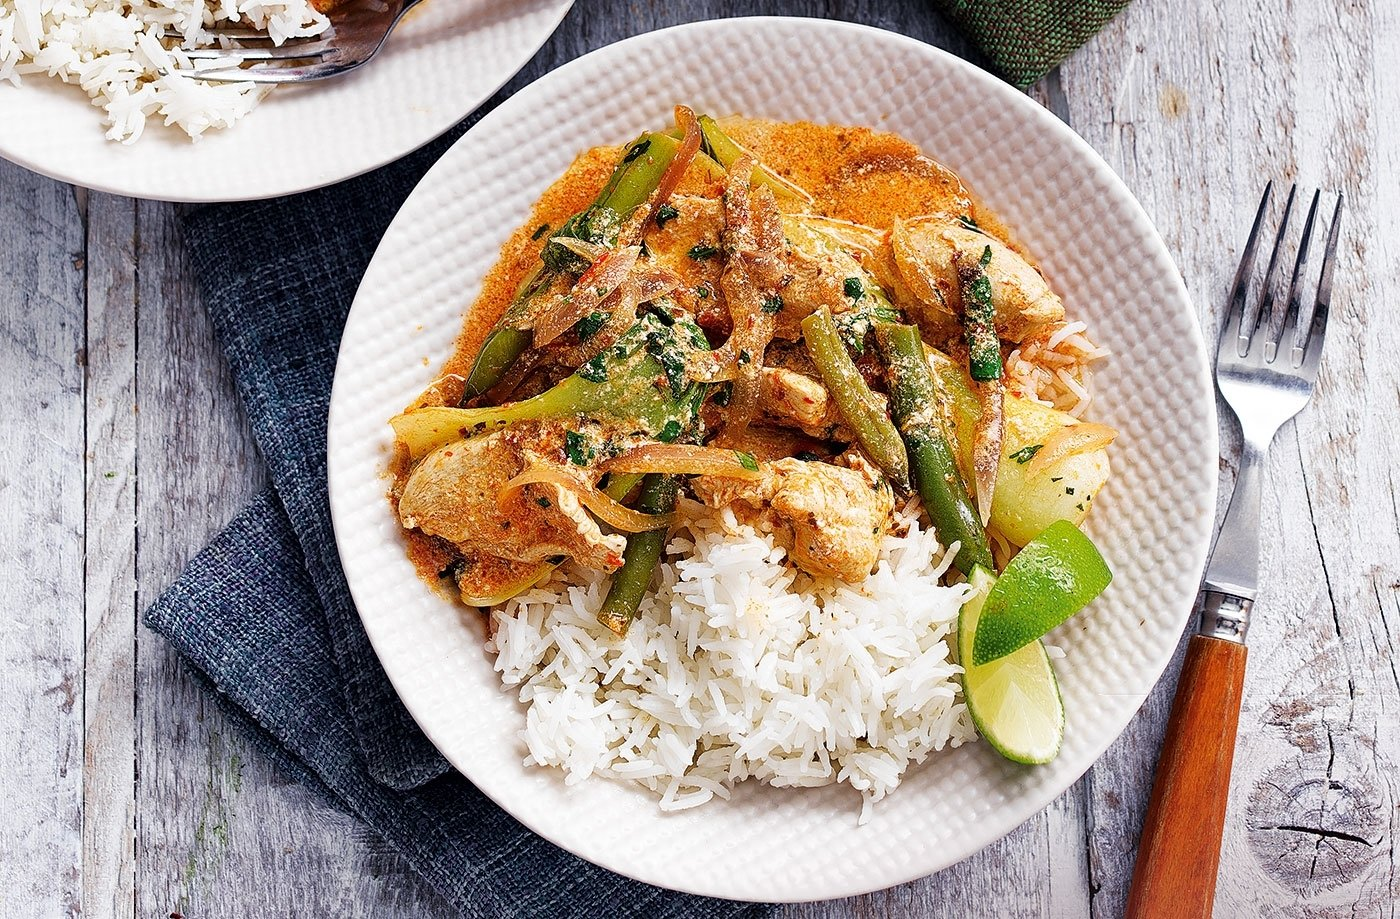 10 Stunning Quick Dinner Ideas For Two dinner ideas for two romantic meals tesco real food 3 2021